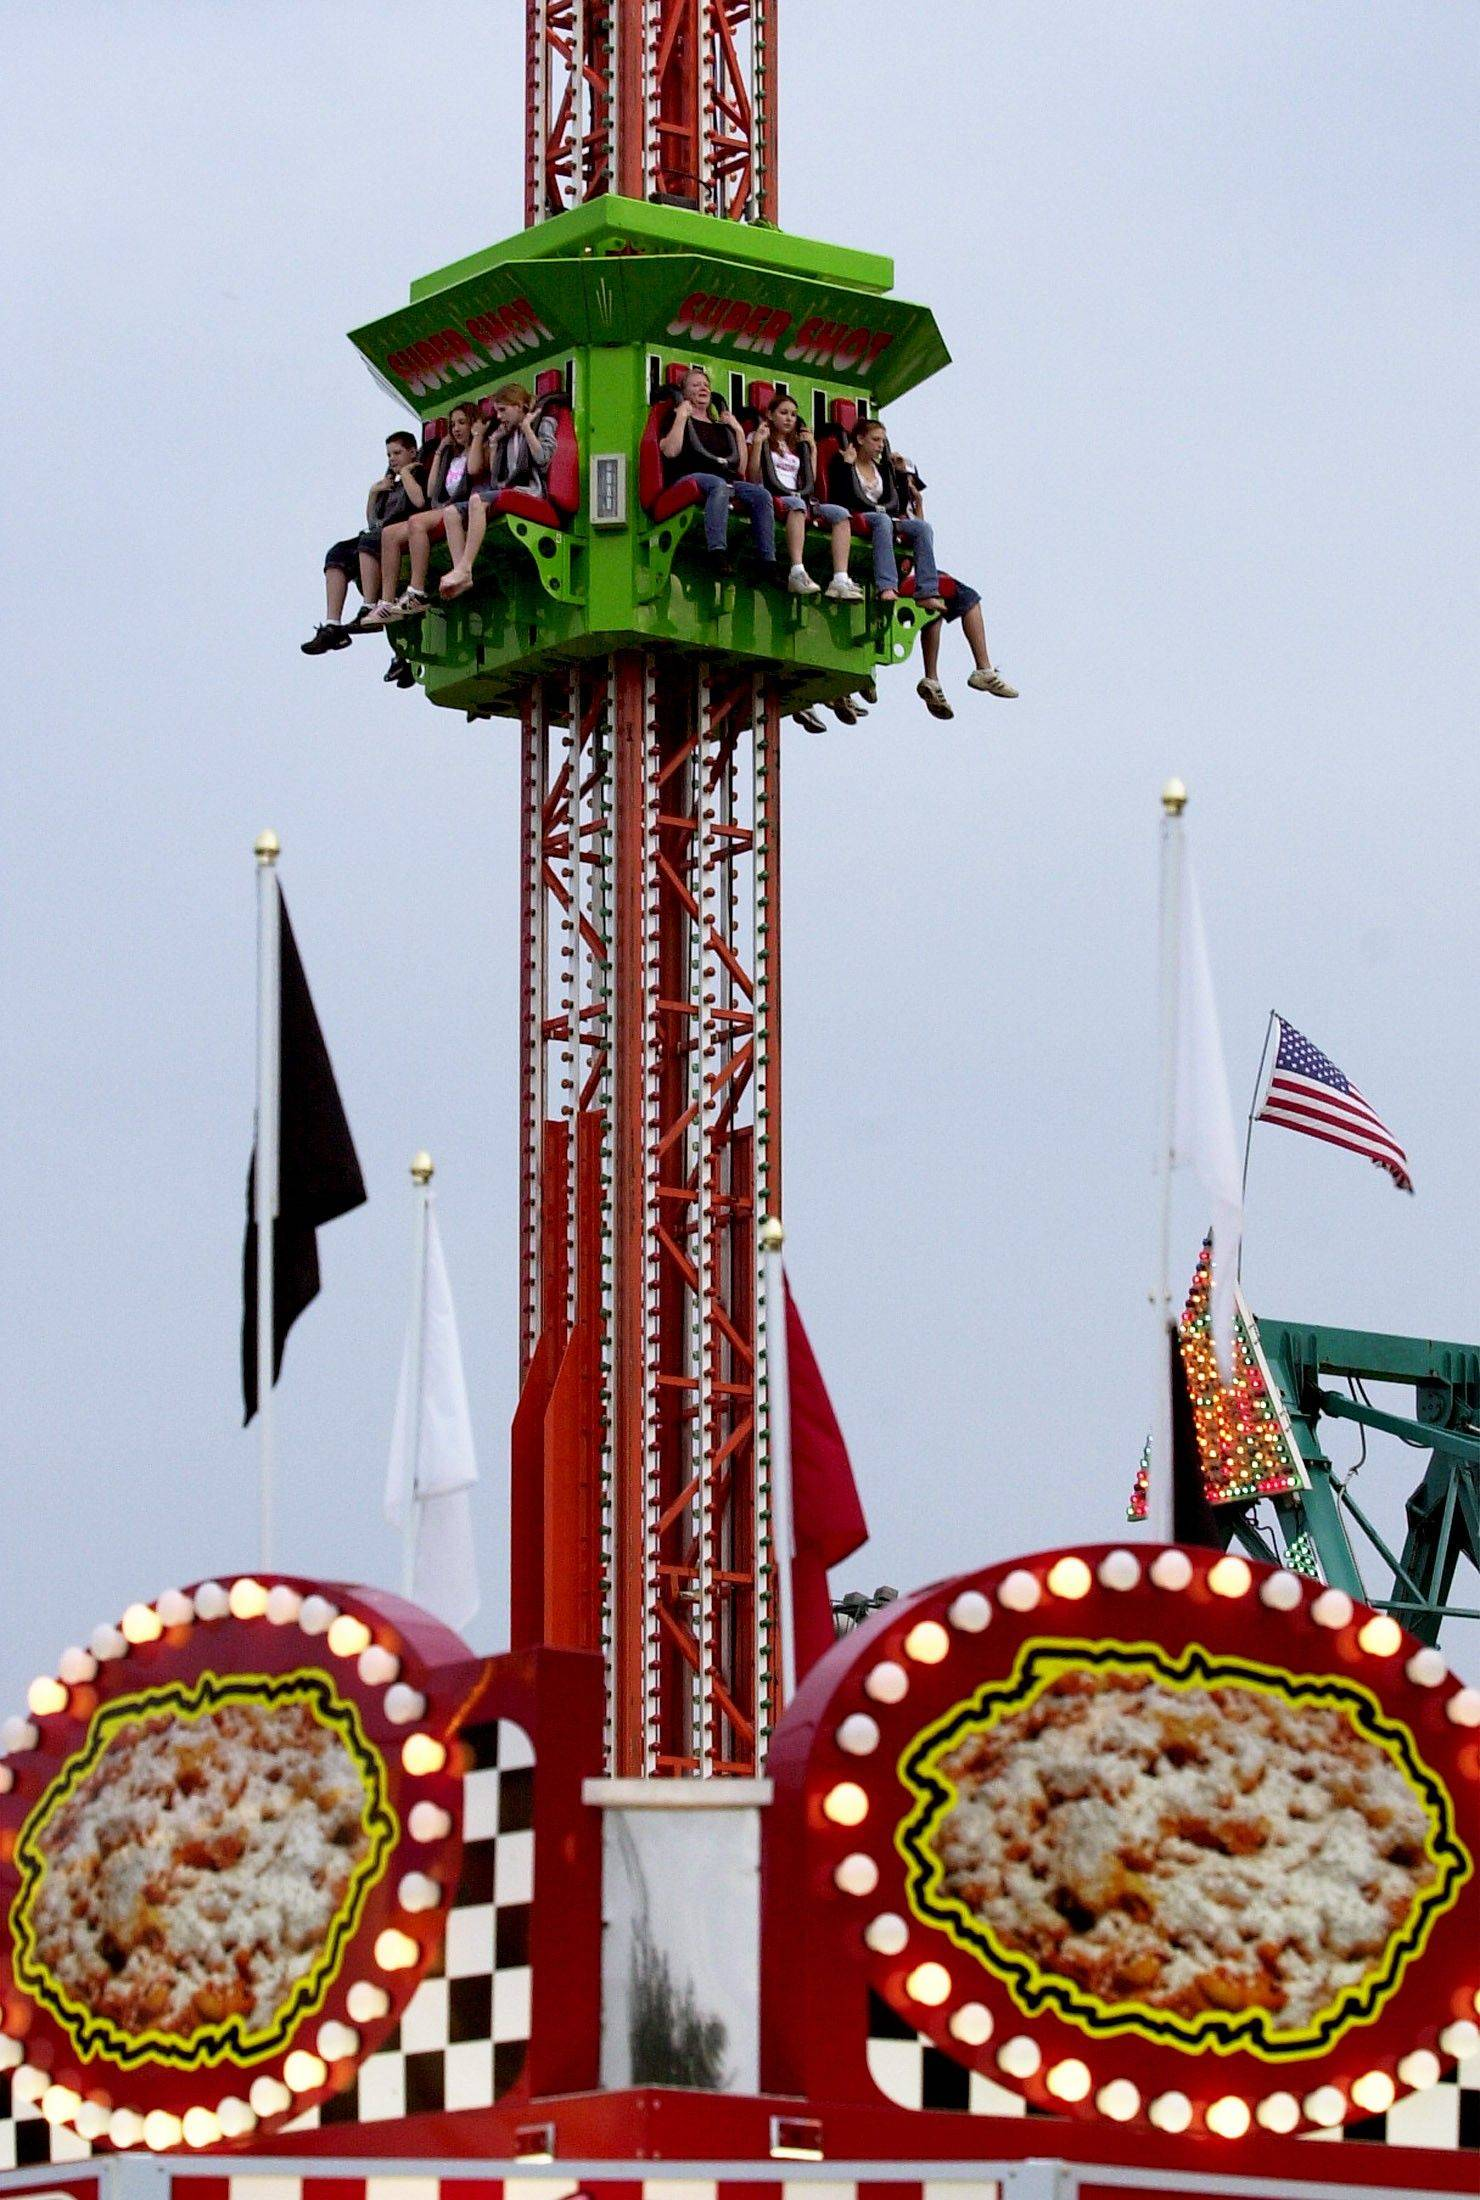 The Rotary Fest carnival will light up the skies for five days.